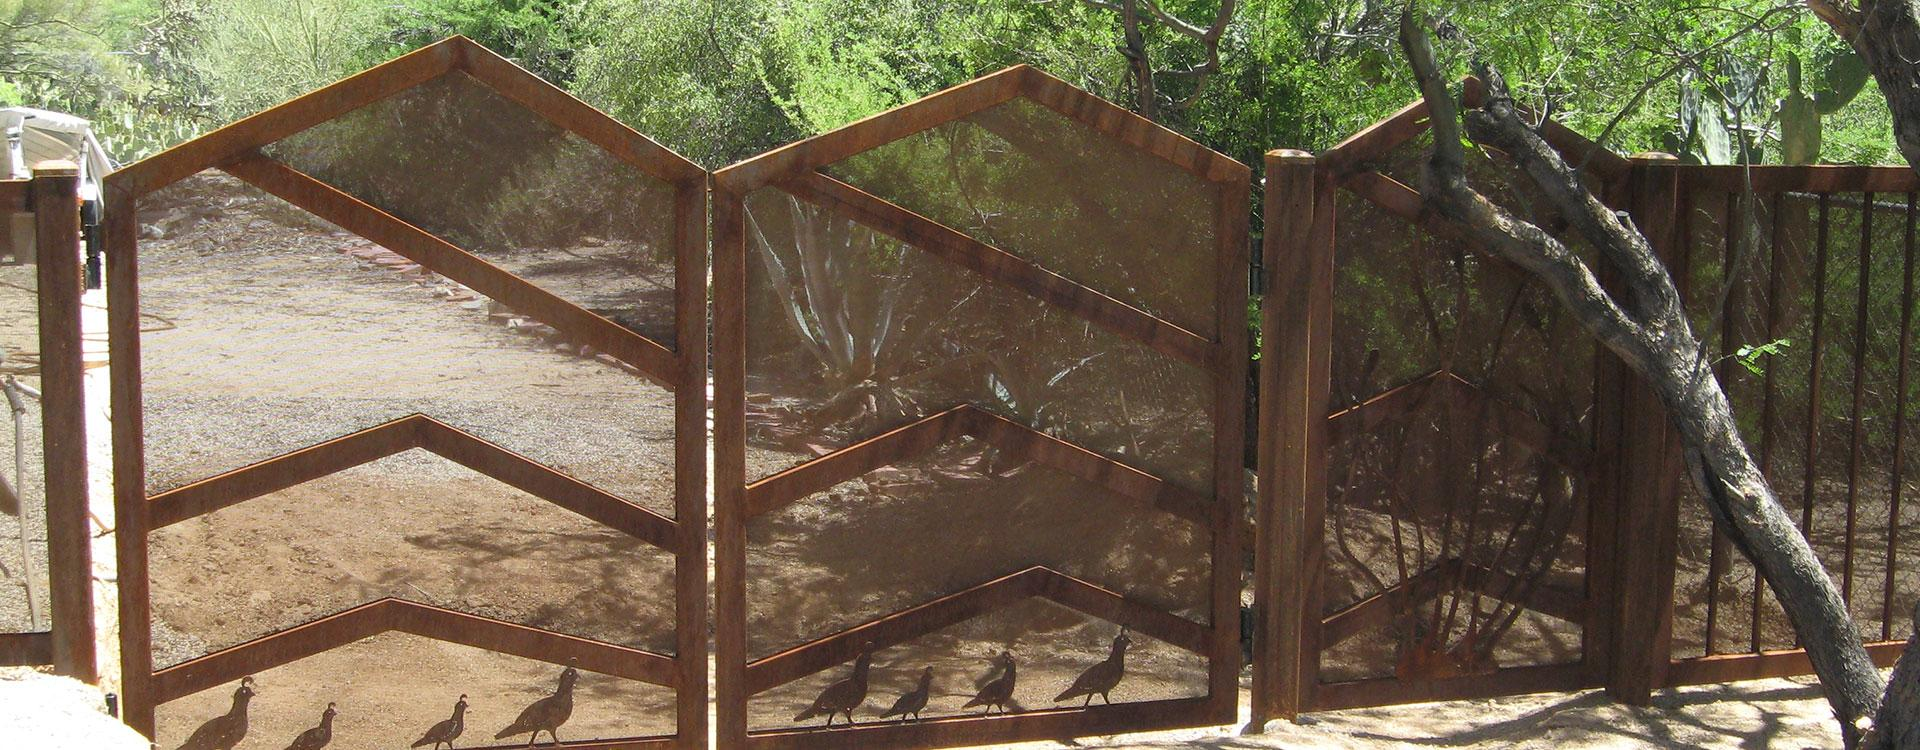 Modern style automatic driveway gates with mountain outline and quail cutouts